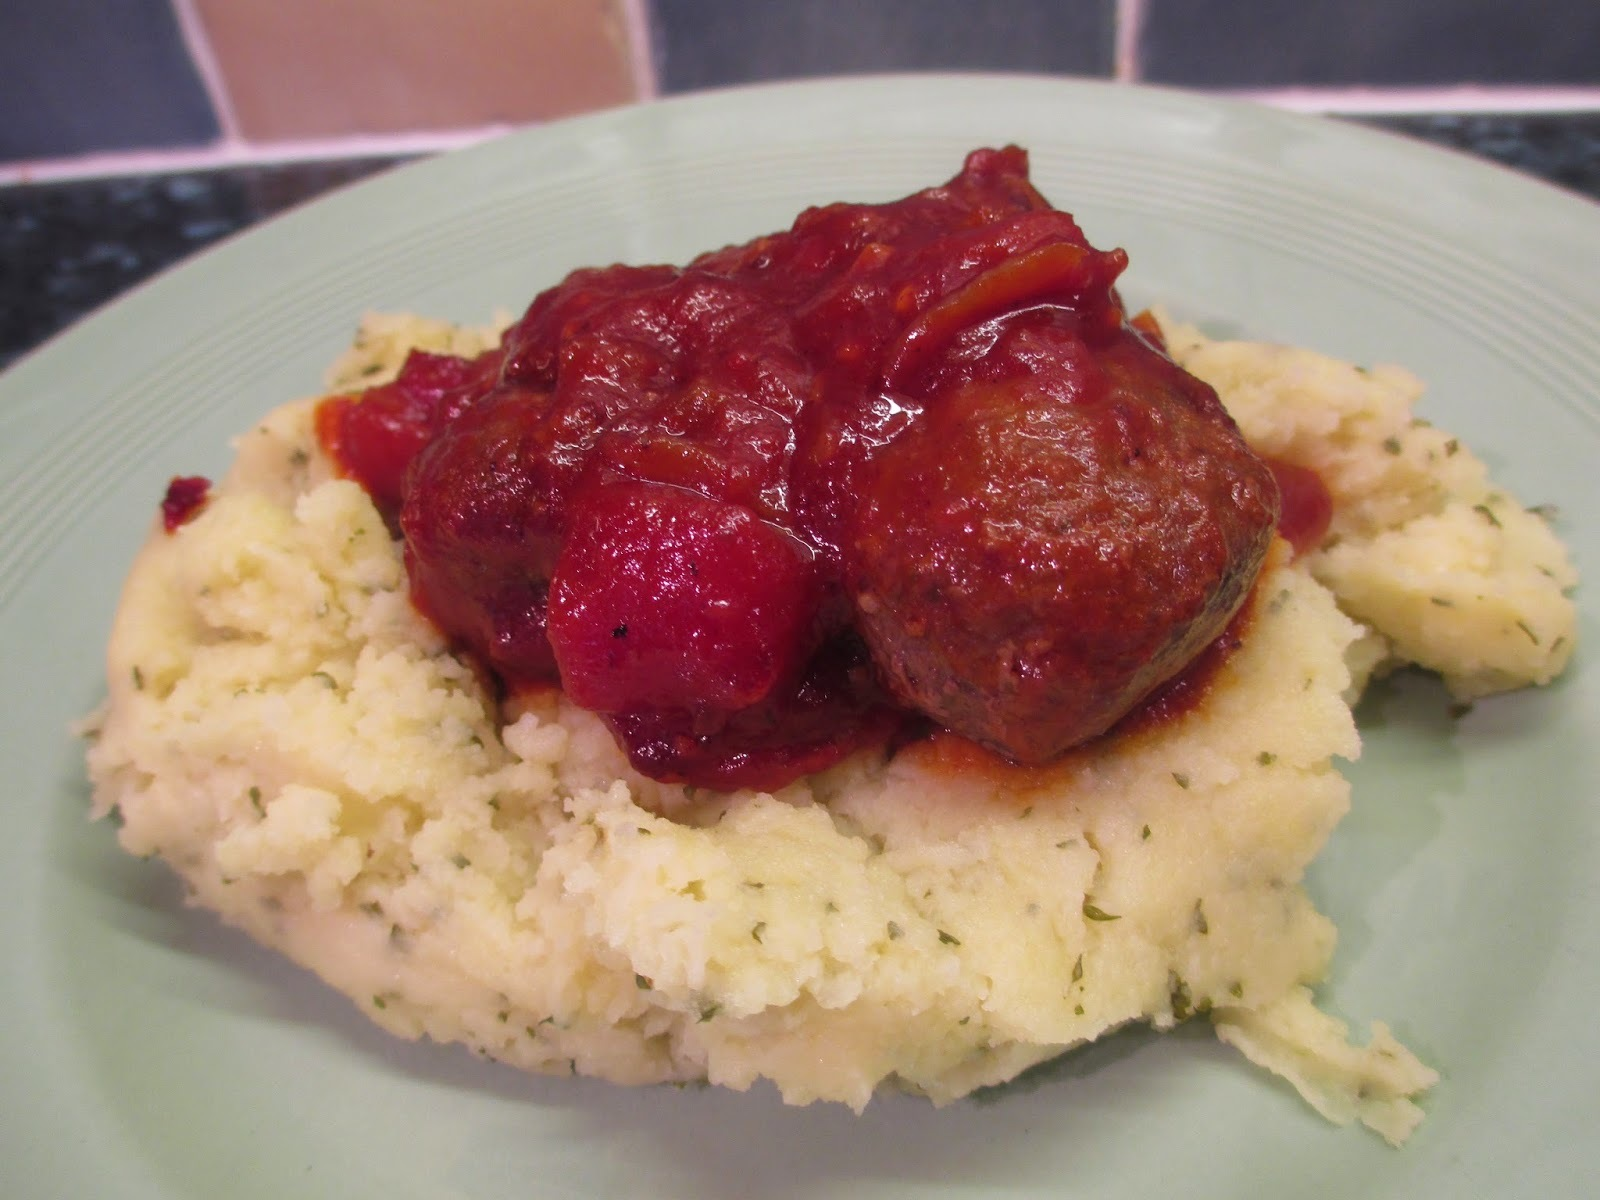 Venison meatballs in barbeque sauce with parsley mash - 78p per portion.